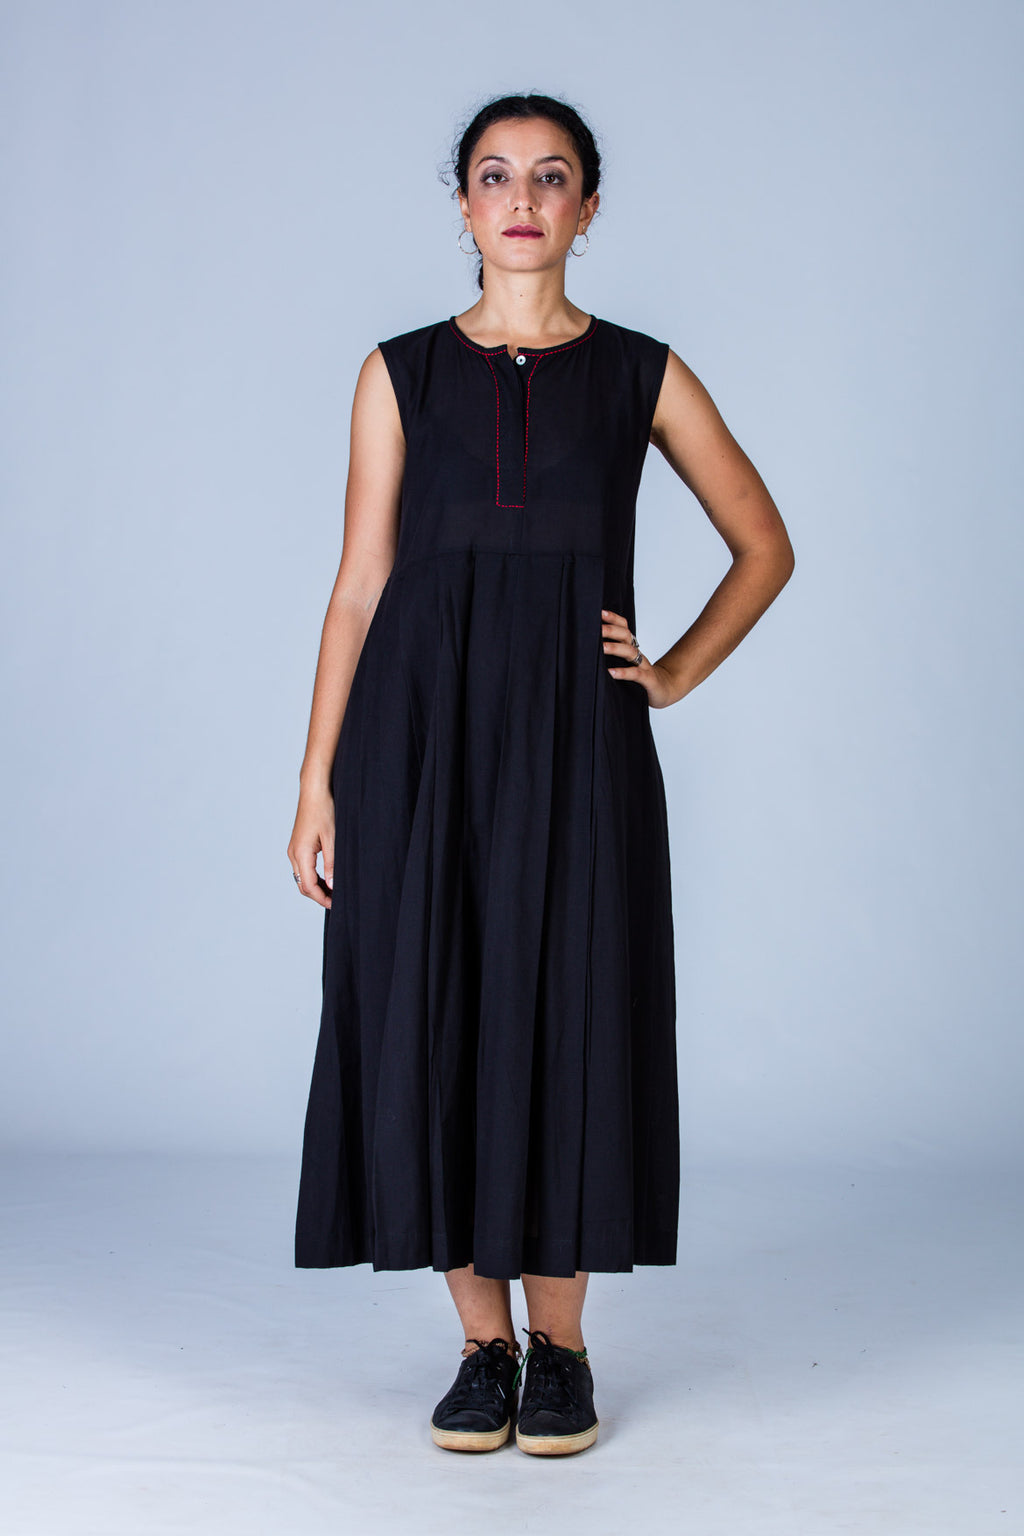 Black Organic cotton Dress - NAVYA - Upasana Design Studio